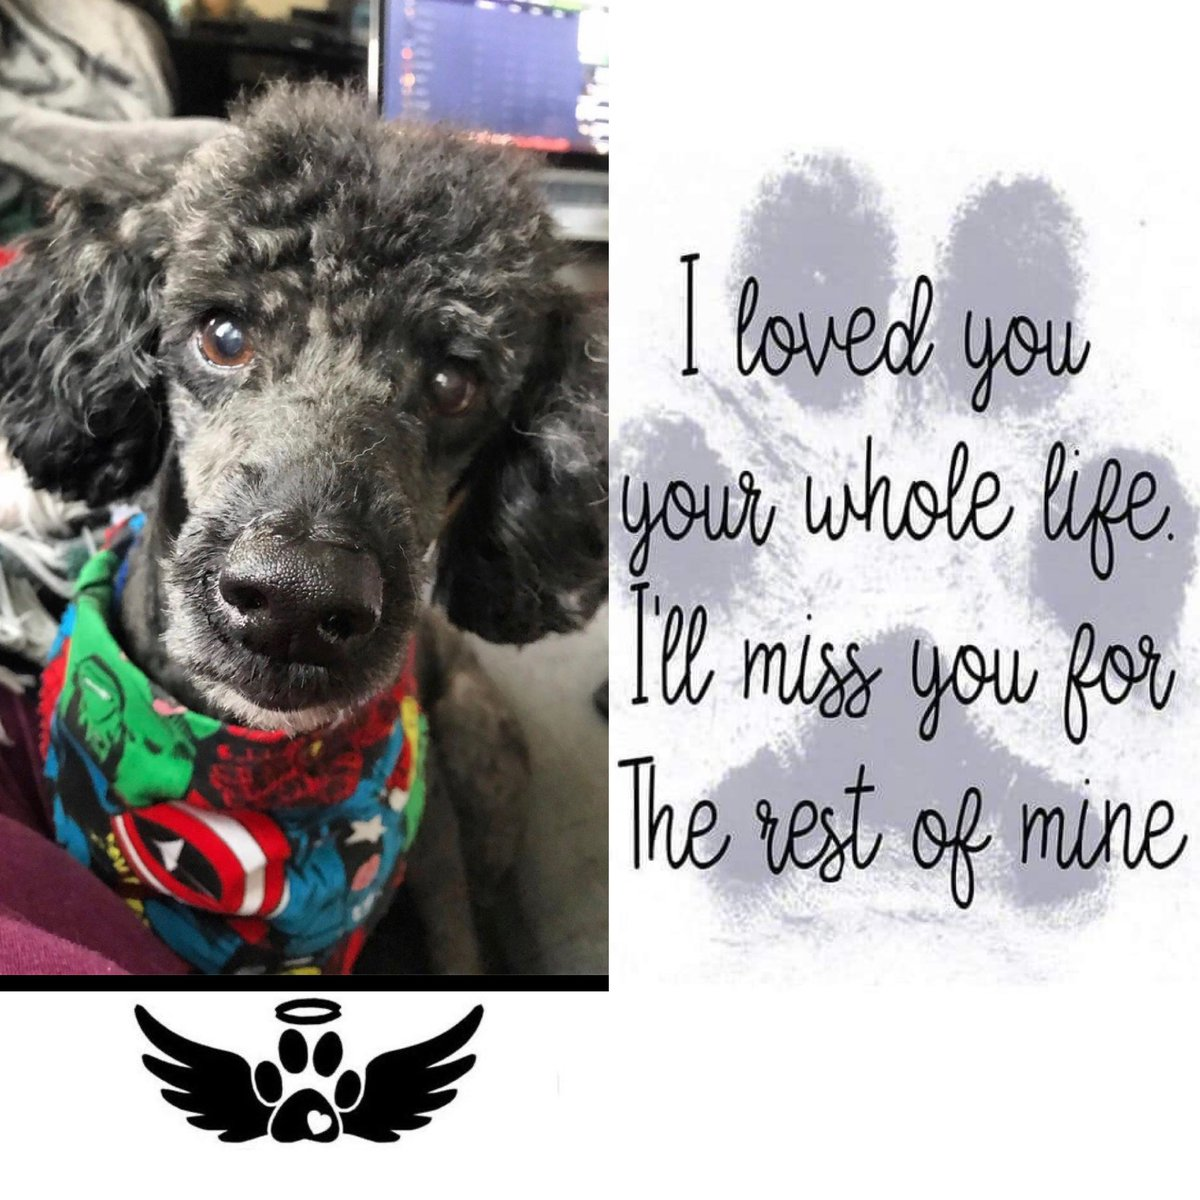 #seasonofmourning for sure 😢😢  RIP our good boy Zorro